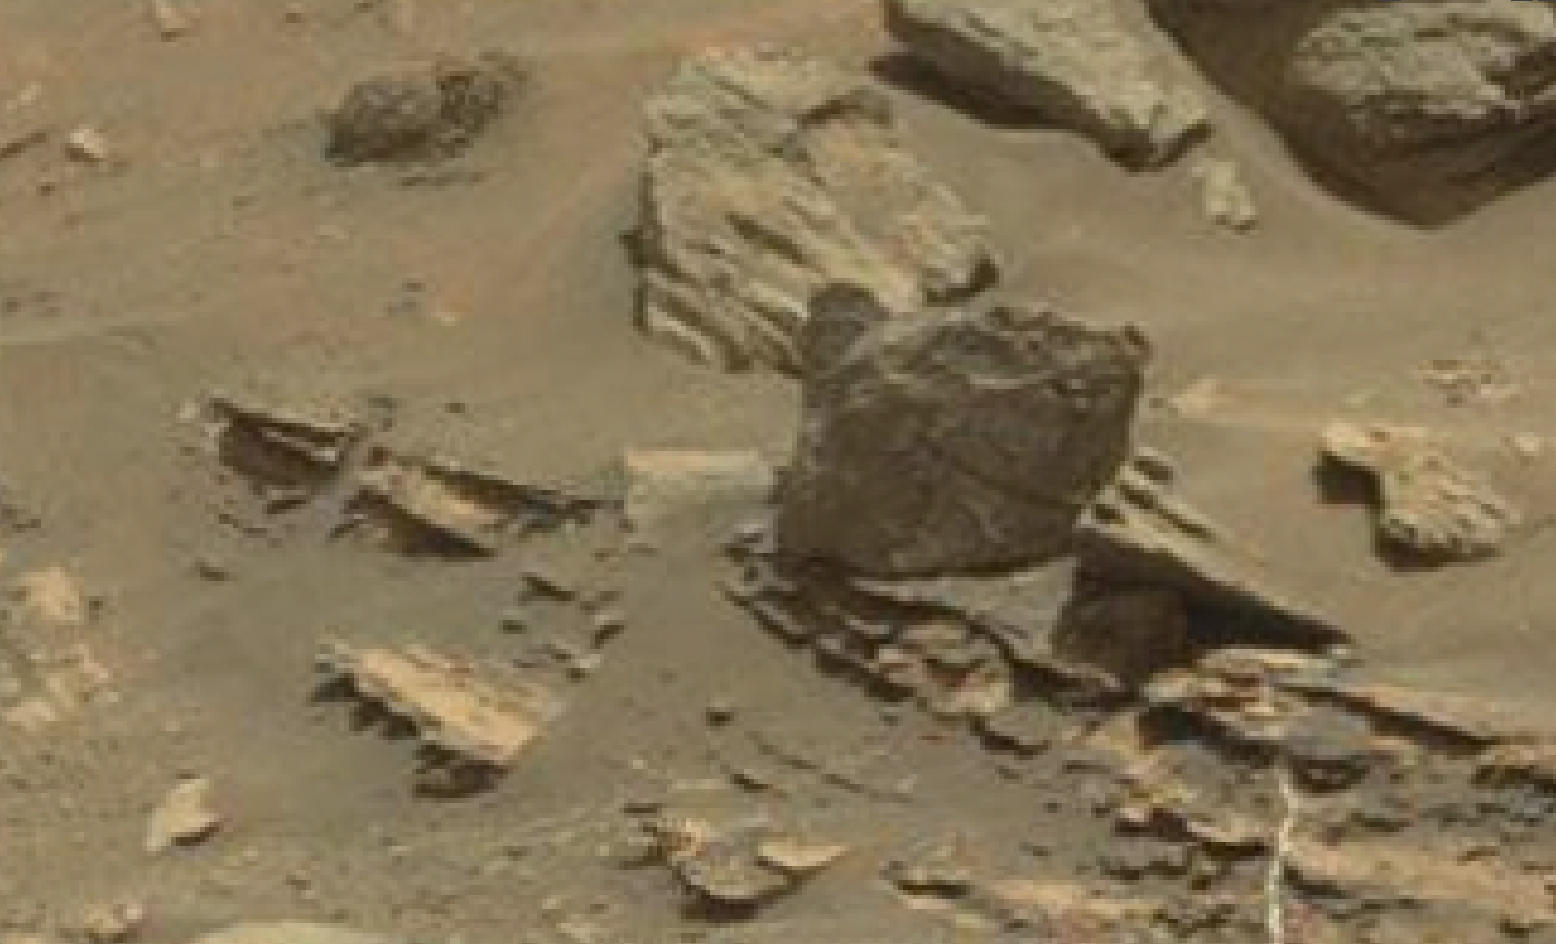 mars sol 1432 mickey mouse anomaly artifacts - was life on mars